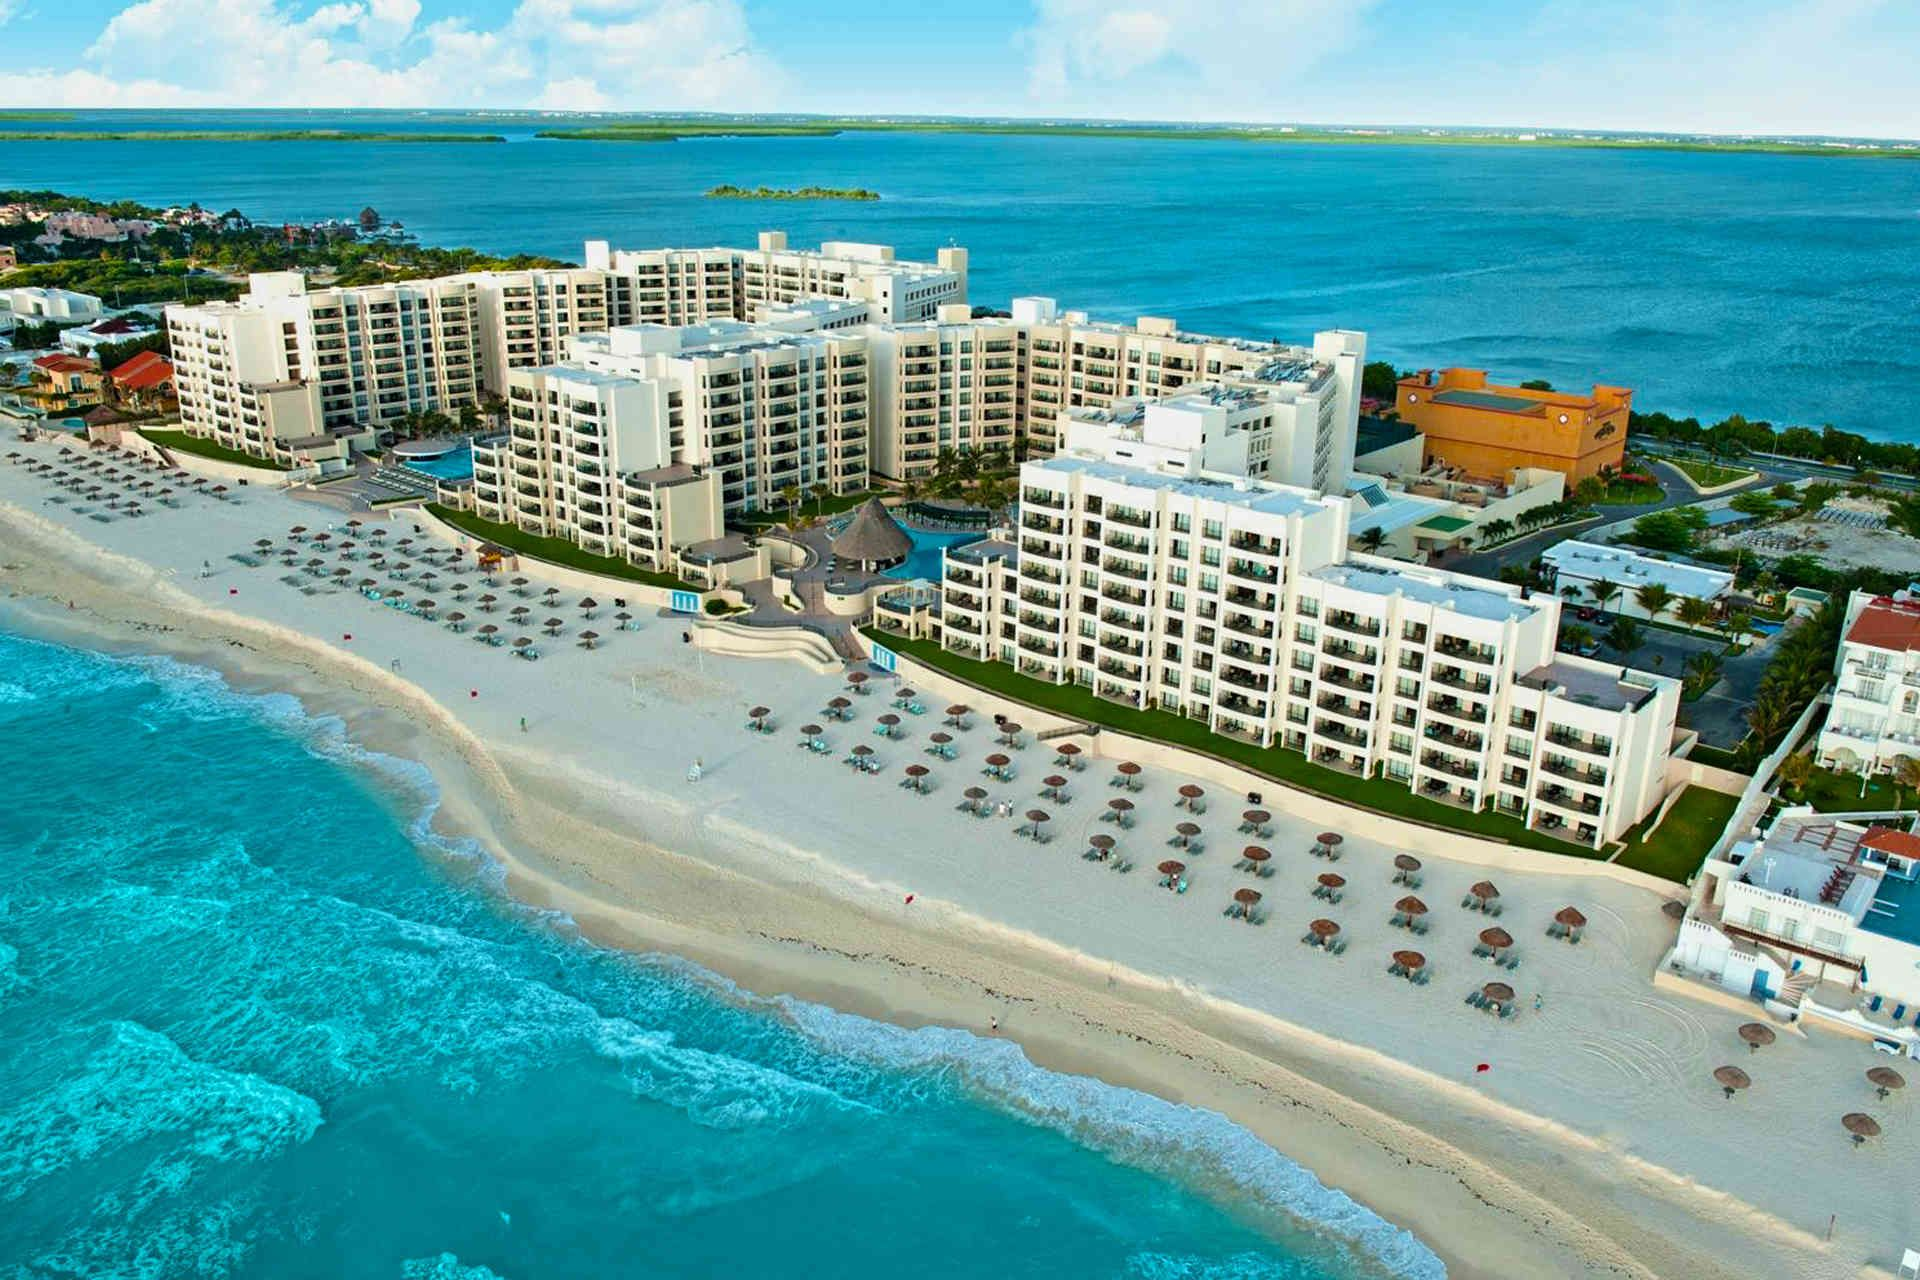 19 Best AllInclusive Family Resorts in Mexico for 2020